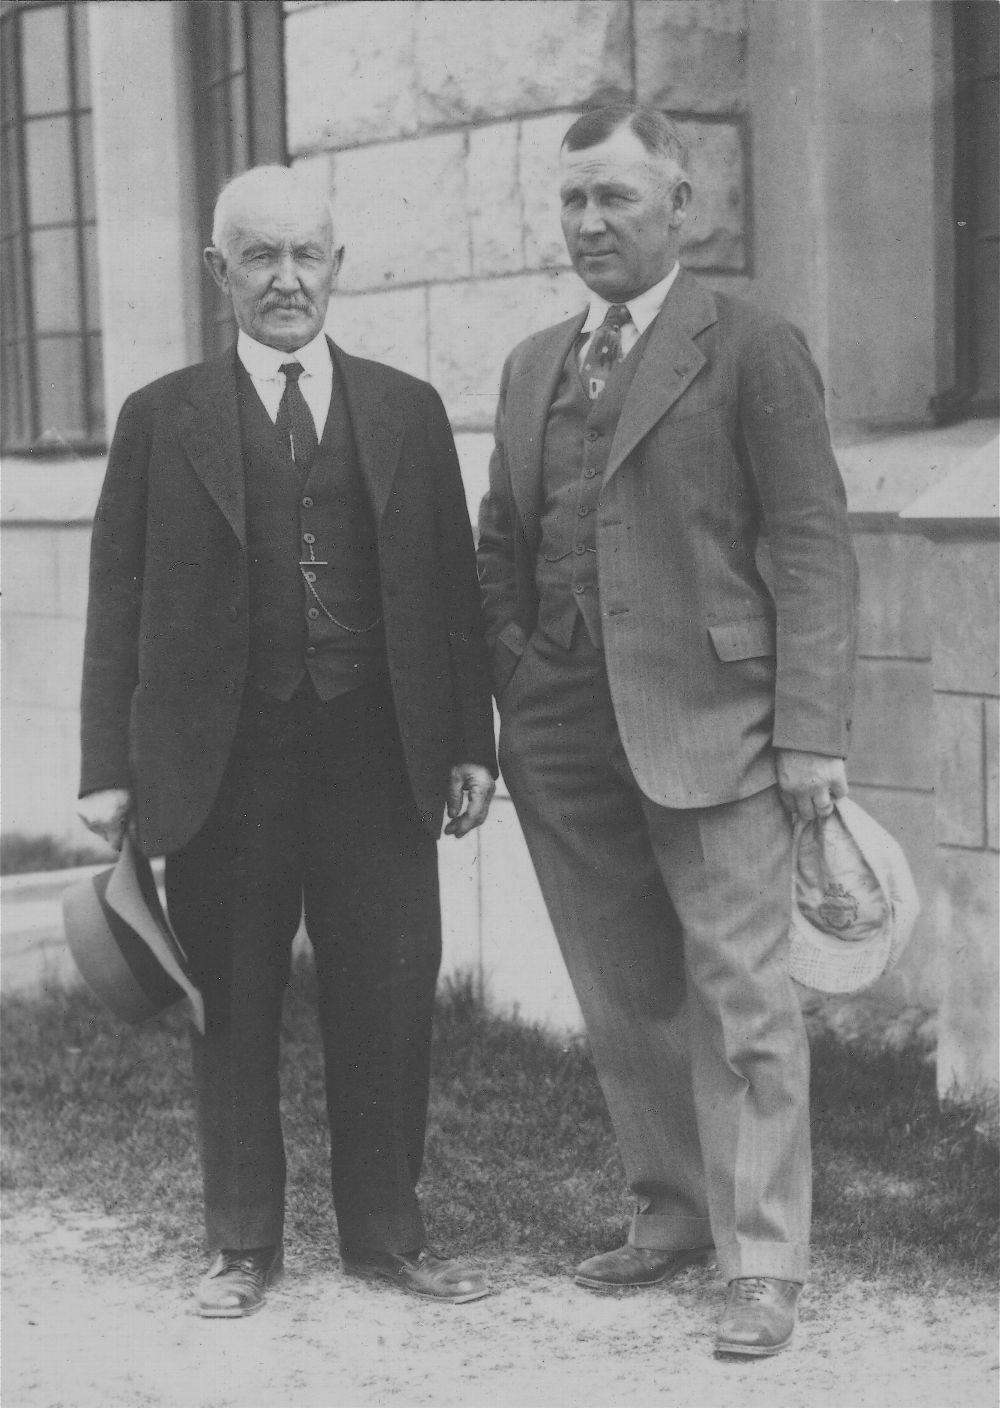 Charles and George Sternberg